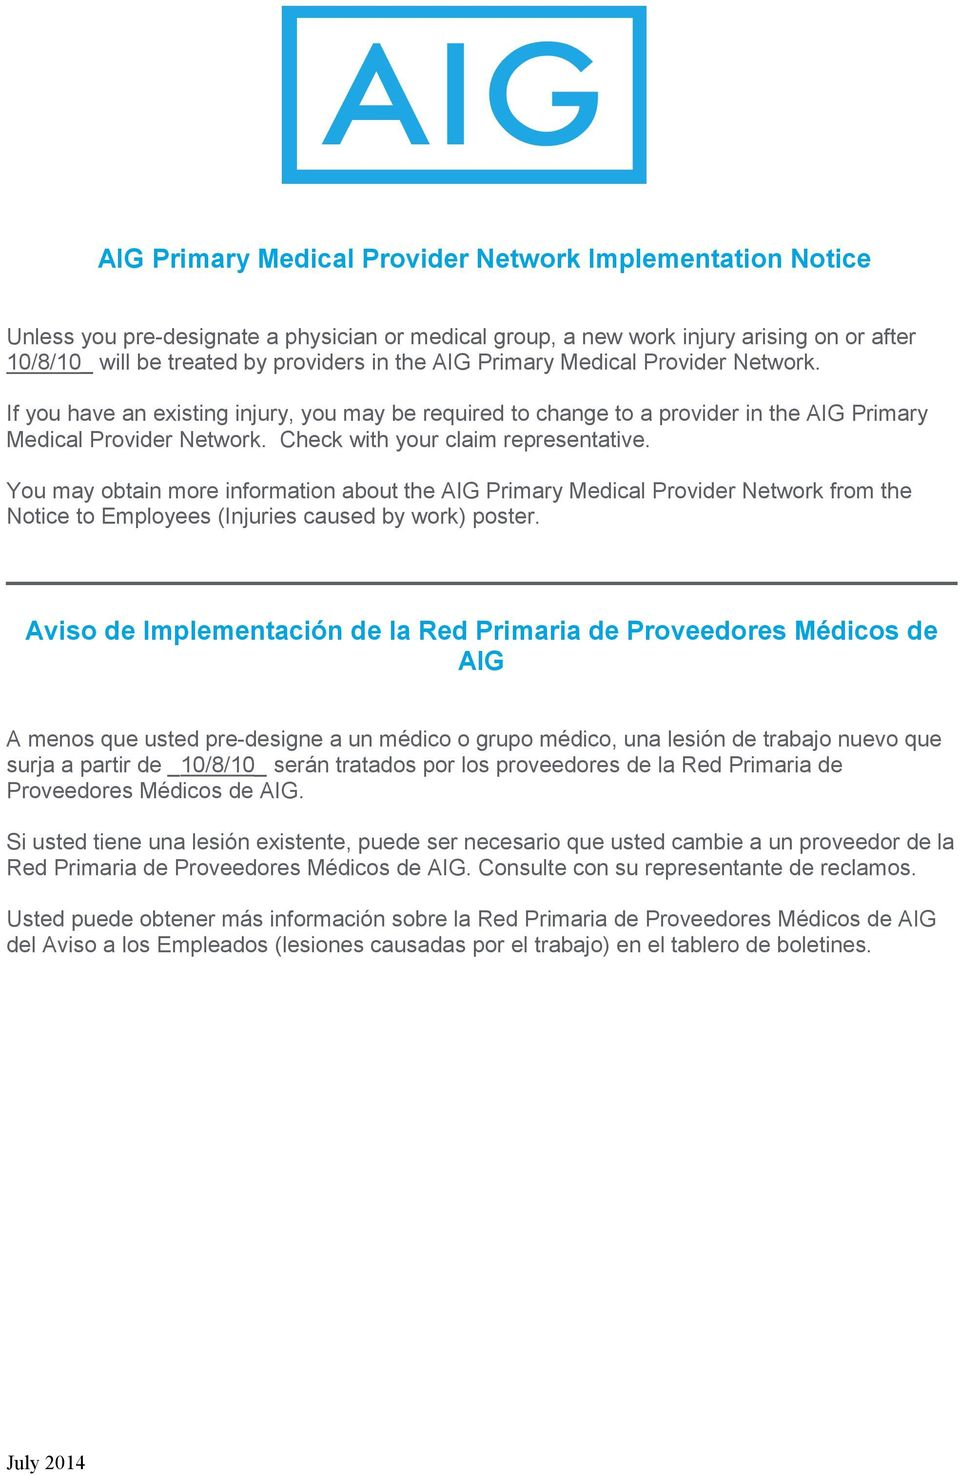 You may obtain more information about the AIG Primary Medical Provider Network from the Notice to Employees (Injuries caused by work) poster.